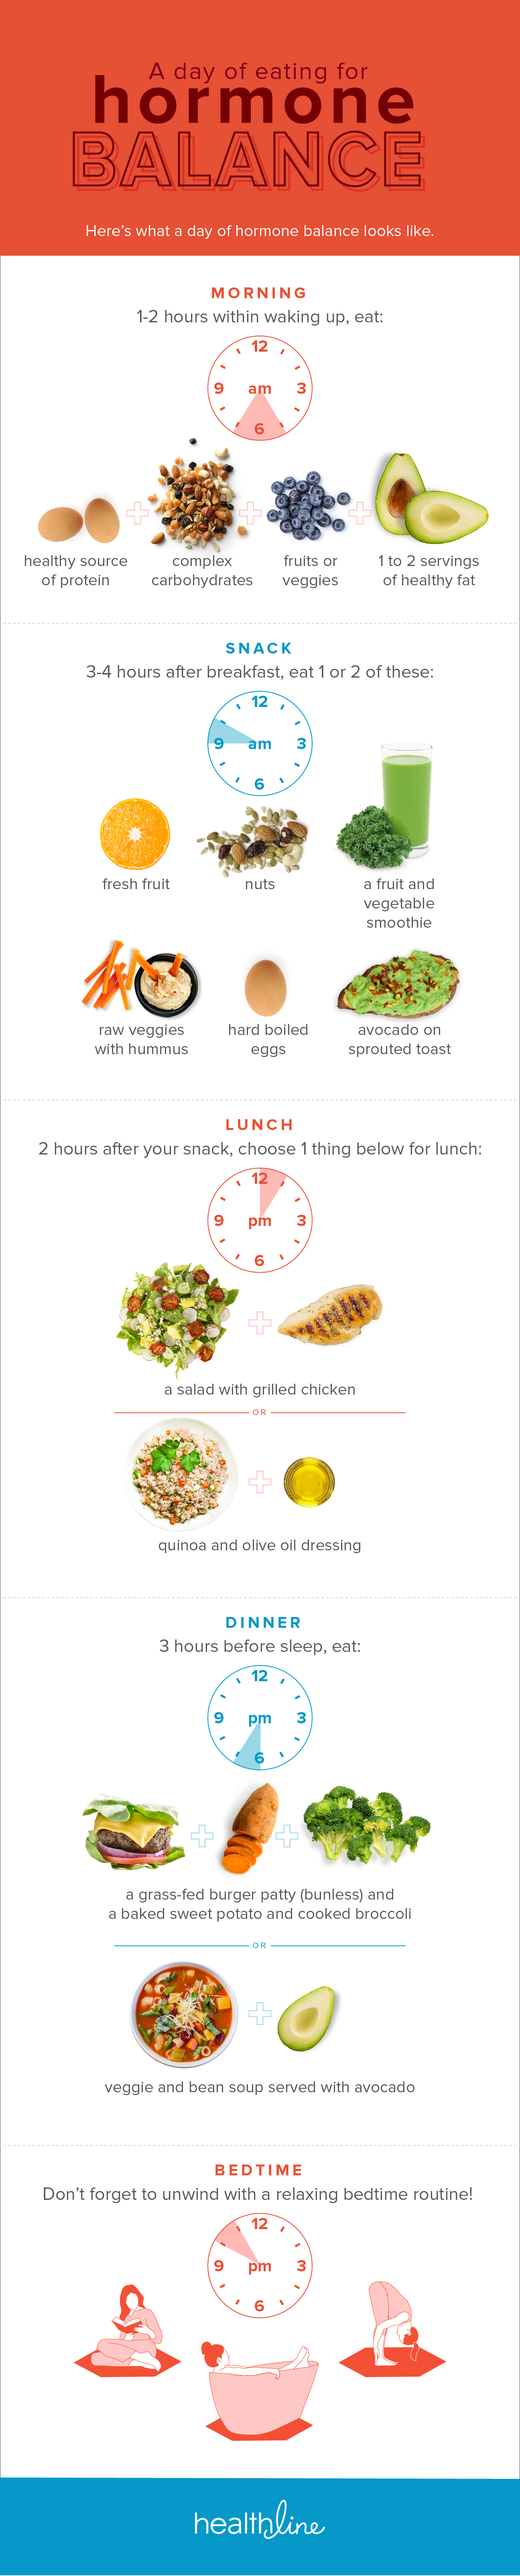 Best Foods to Eat Before and After SoulCycle Best Foods to Eat Before and After SoulCycle new pictures